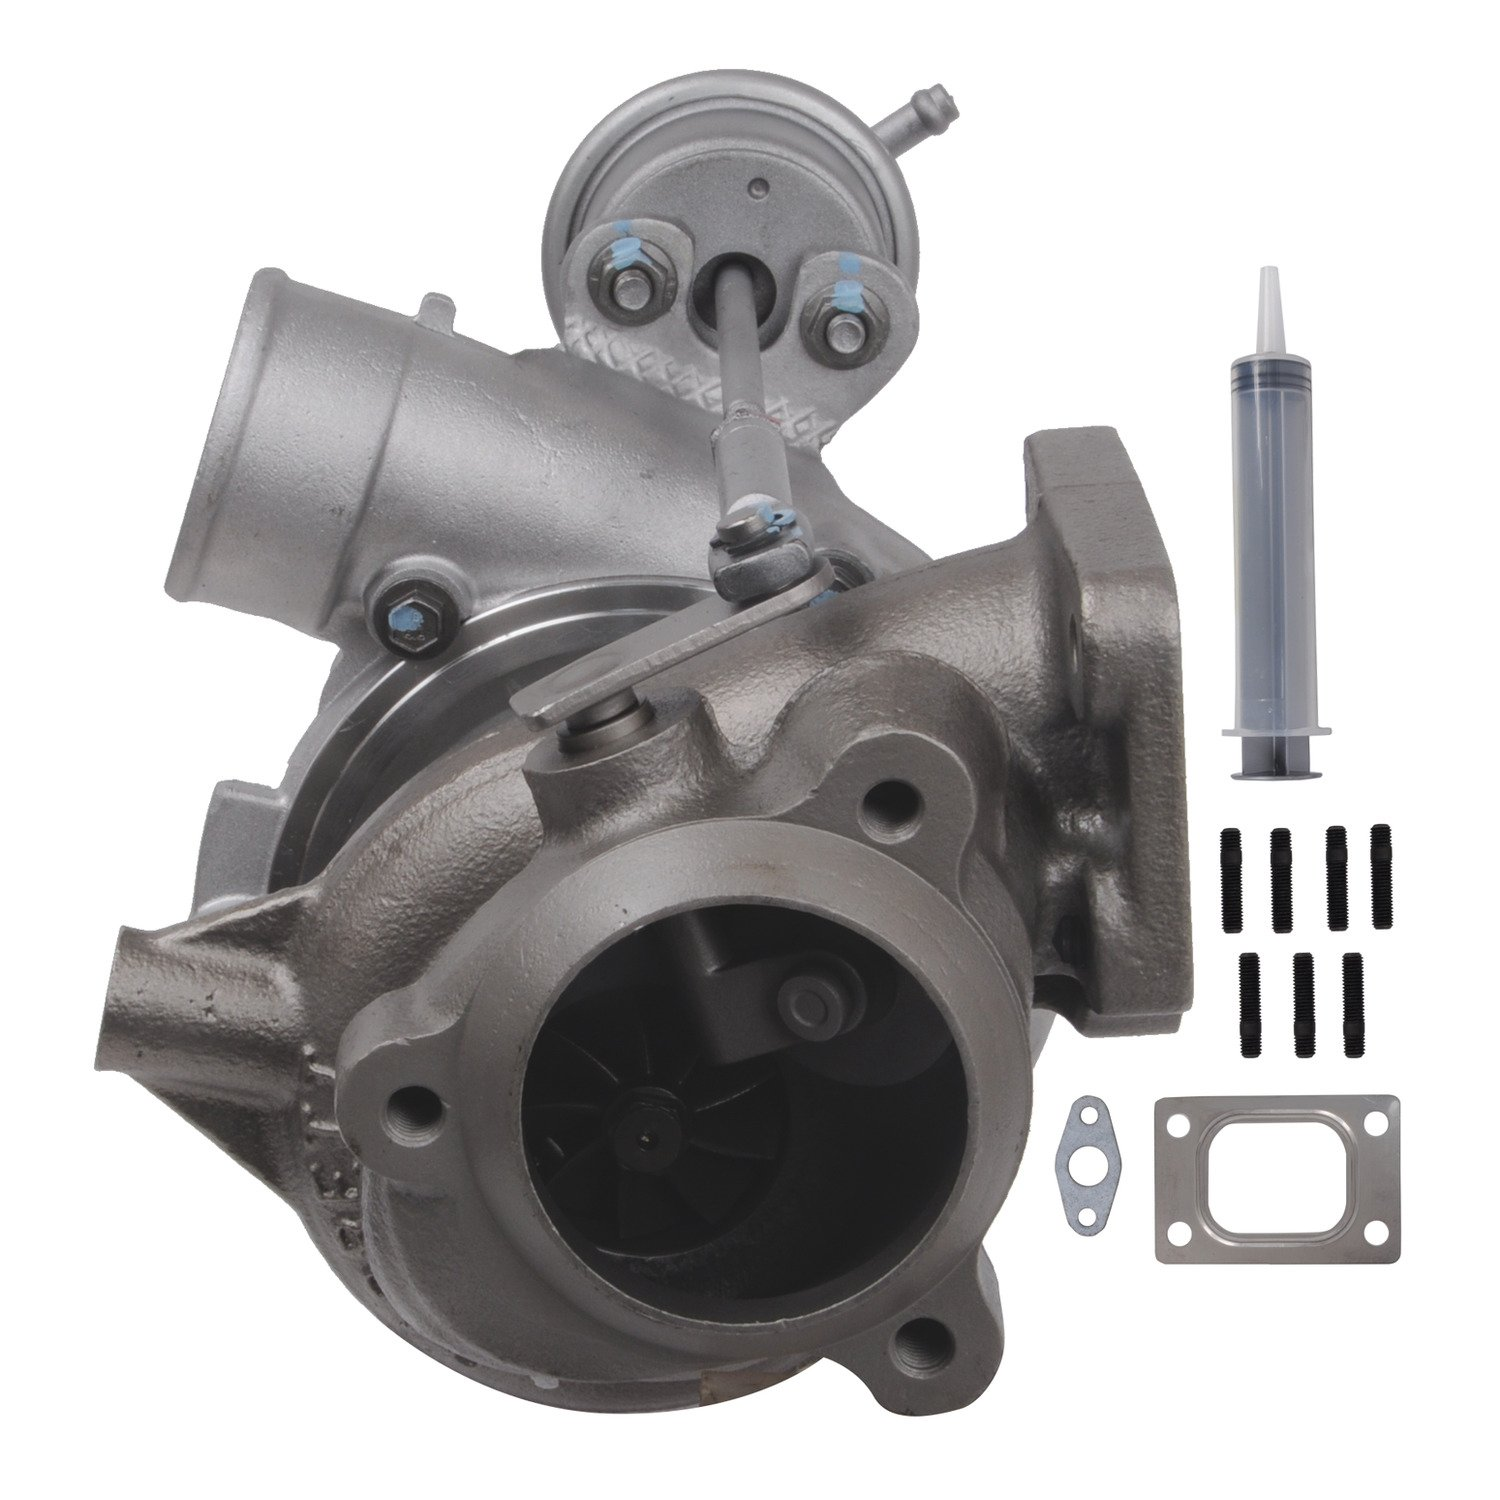 Cardone 2T-805 Remanufactured Turbo by Cardone